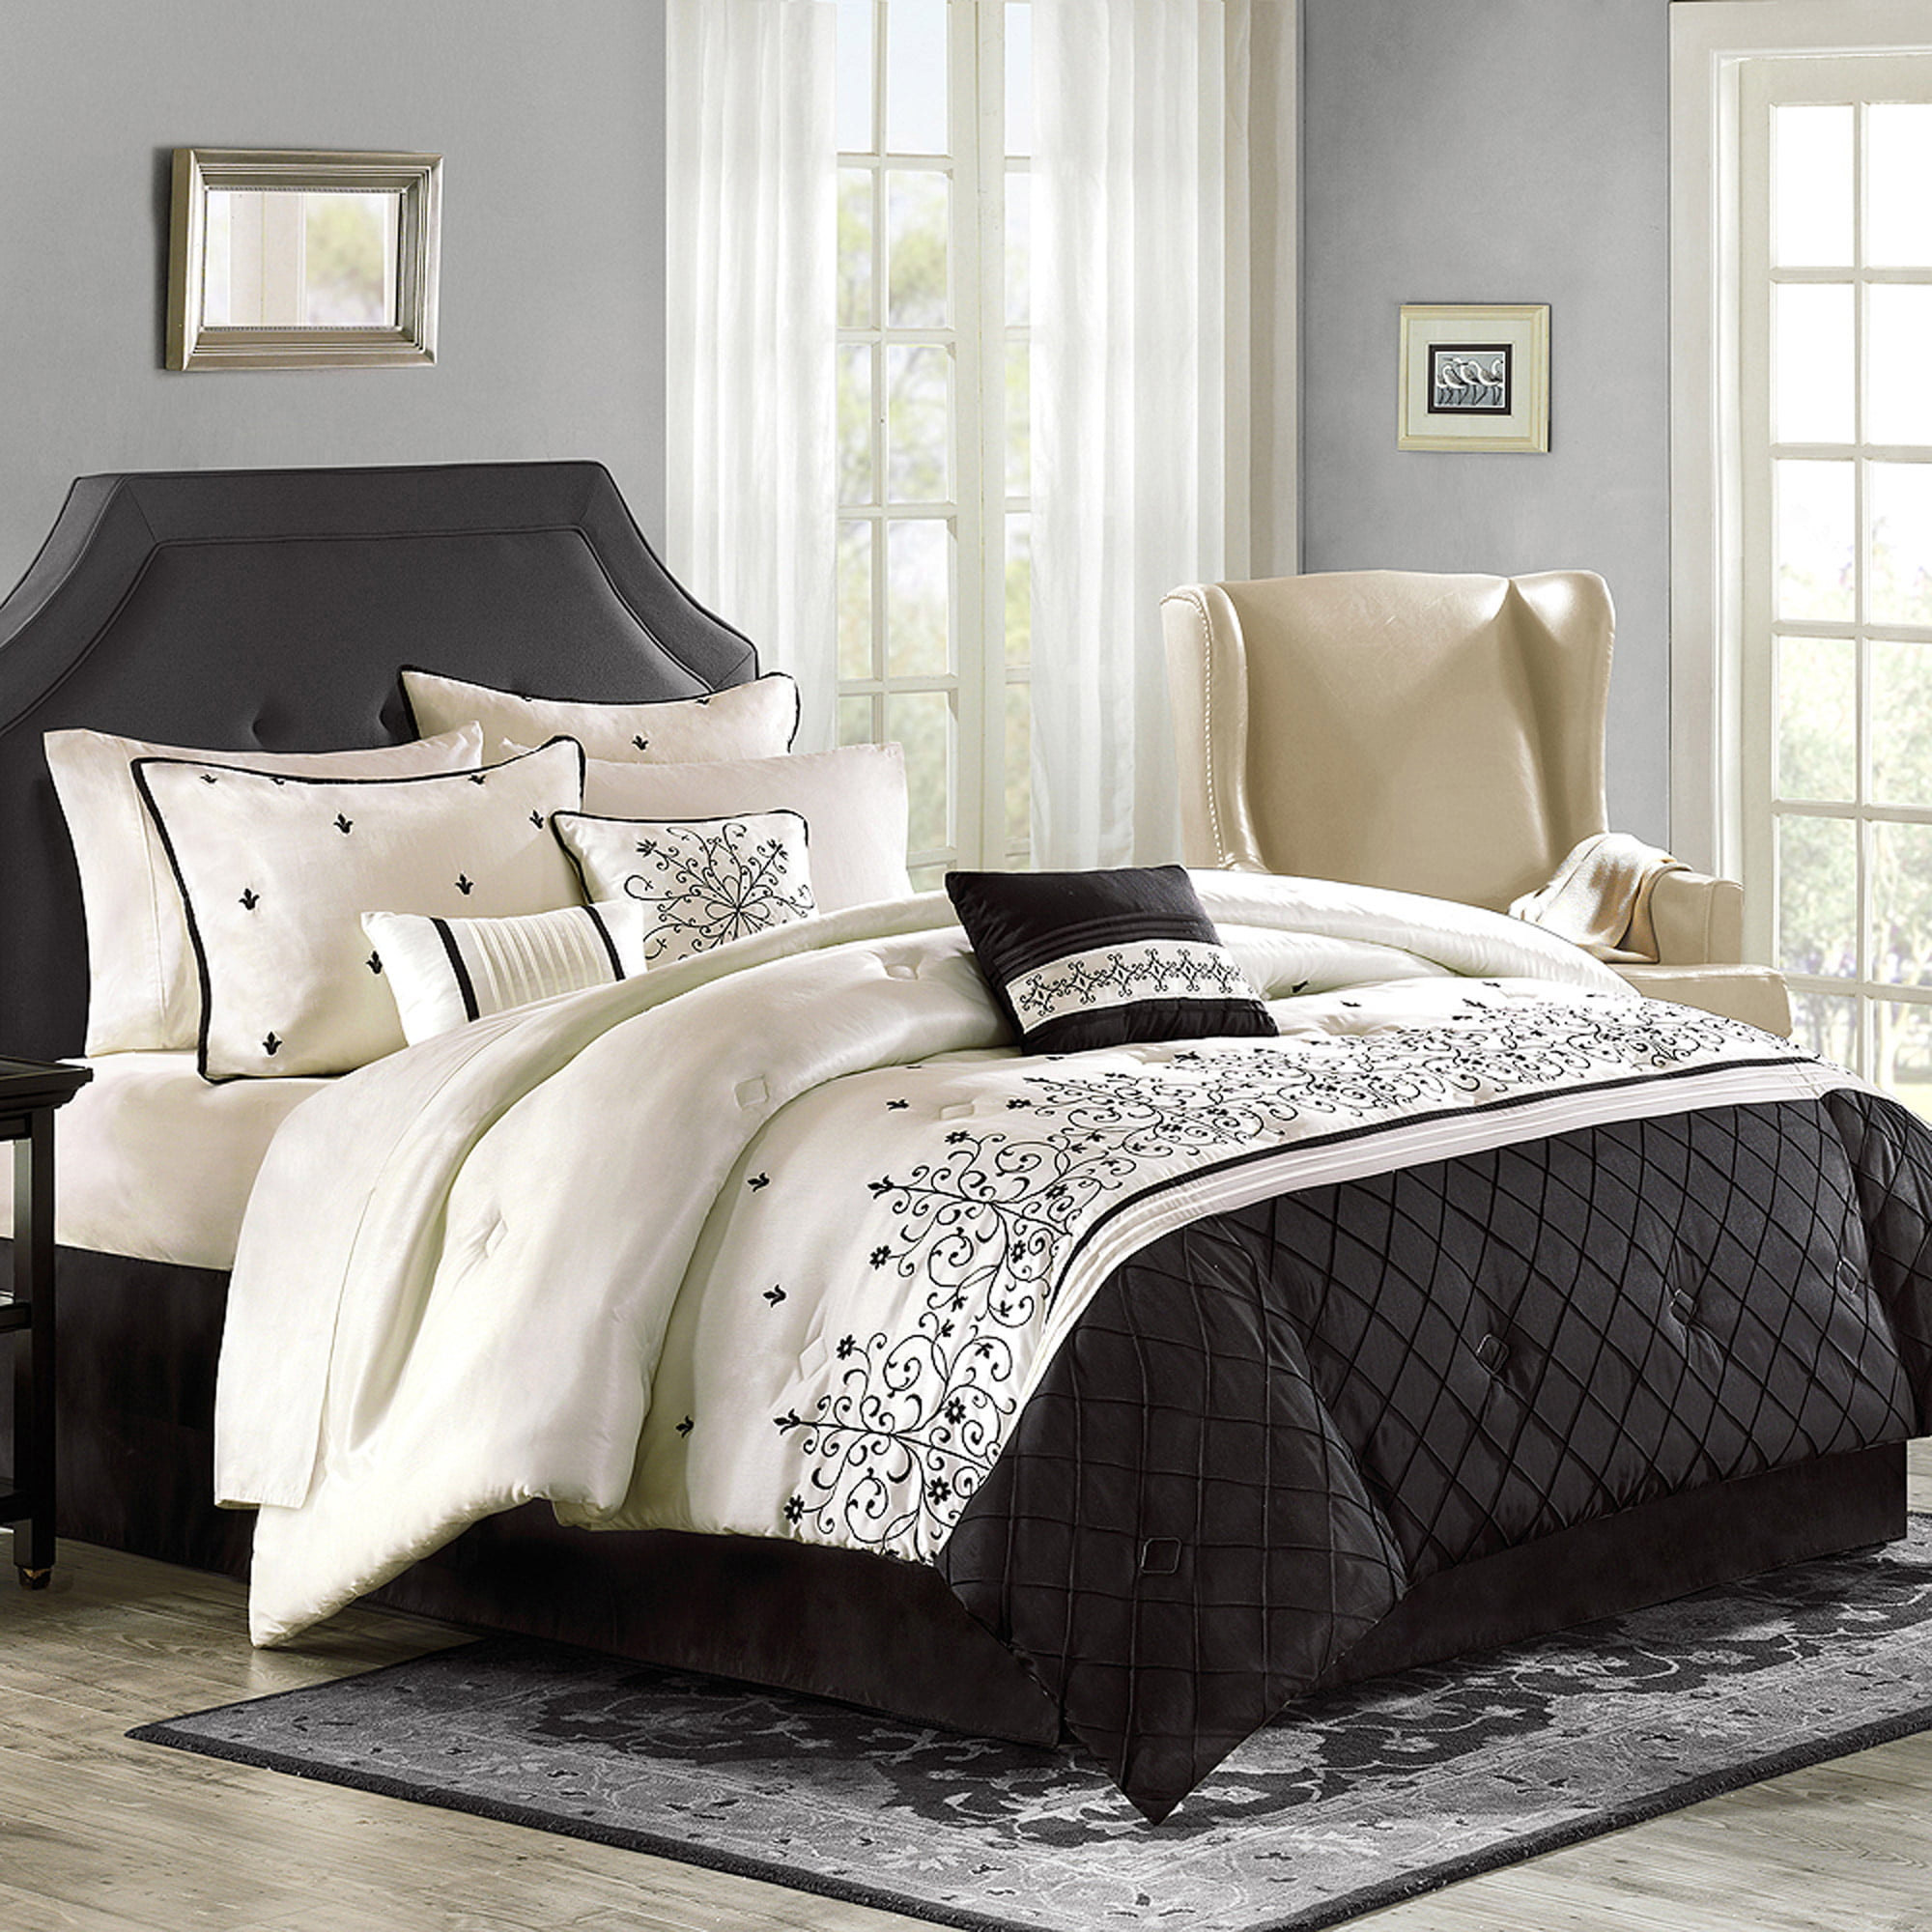 Genial Better Homes And Gardens Regent 7 Piece Comforter Bedding Set   Walmart.com